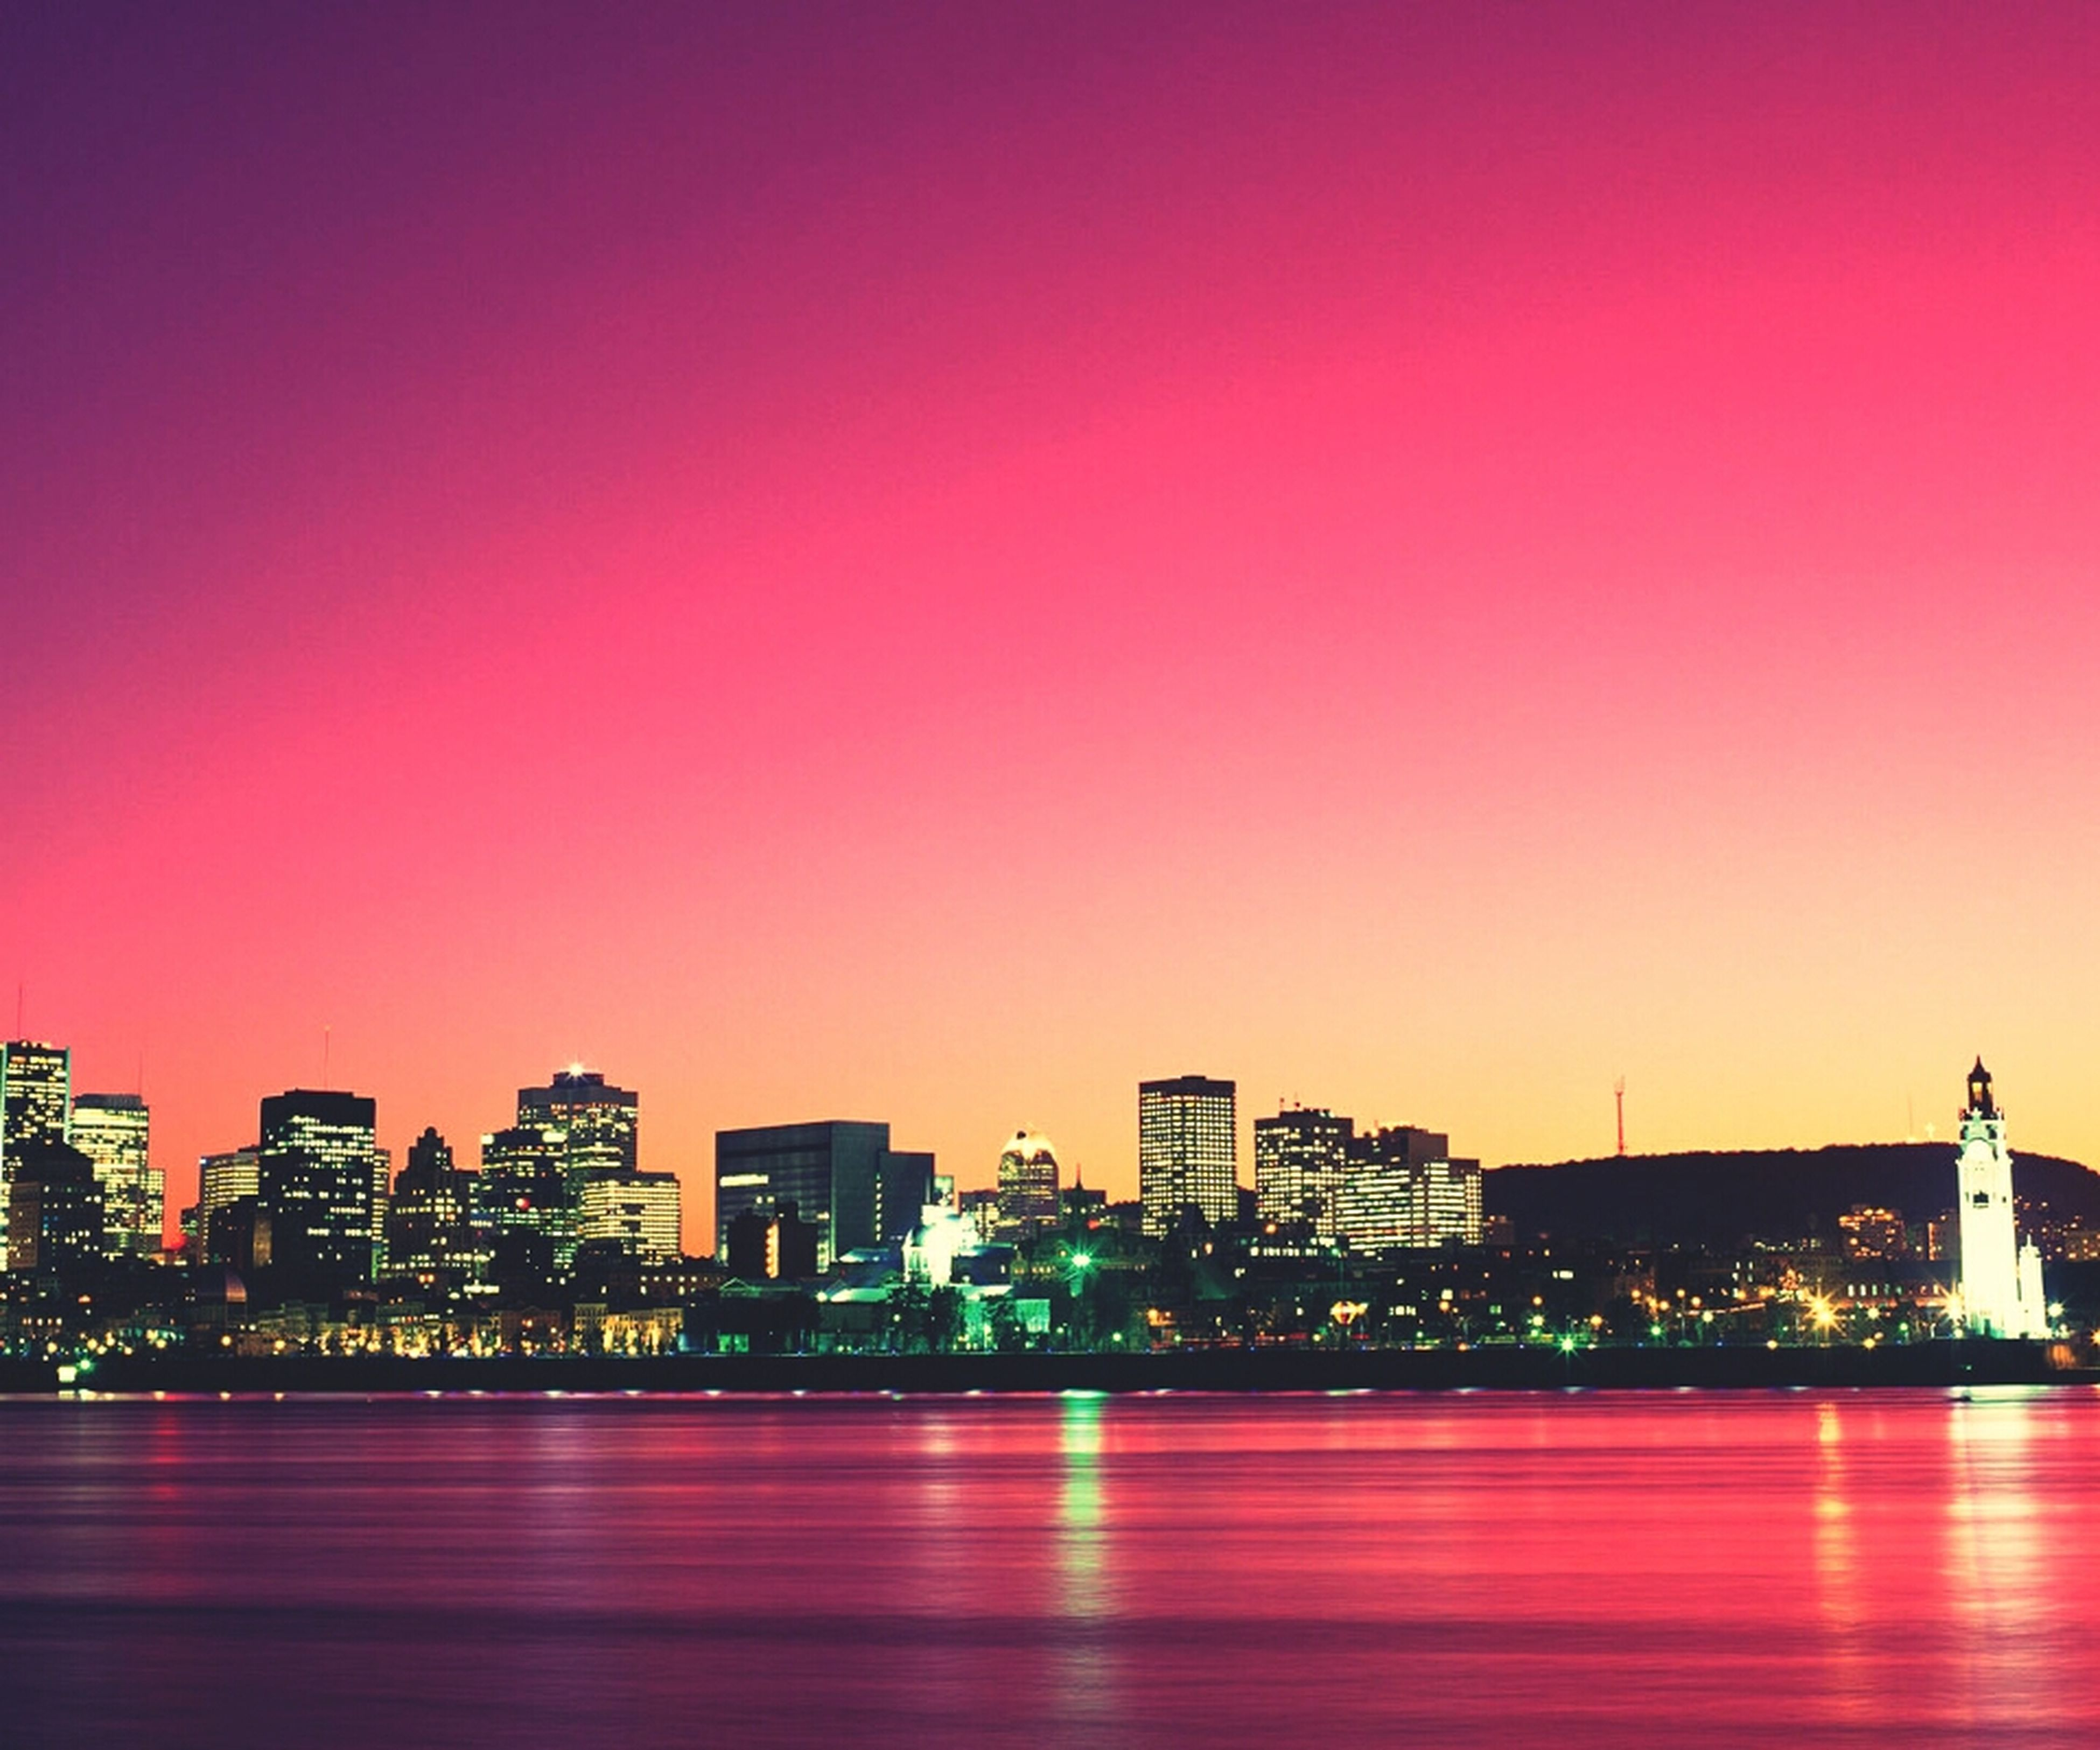 illuminated, architecture, city, building exterior, night, copy space, built structure, waterfront, clear sky, cityscape, orange color, water, red, sunset, sea, multi colored, modern, sky, skyscraper, urban skyline